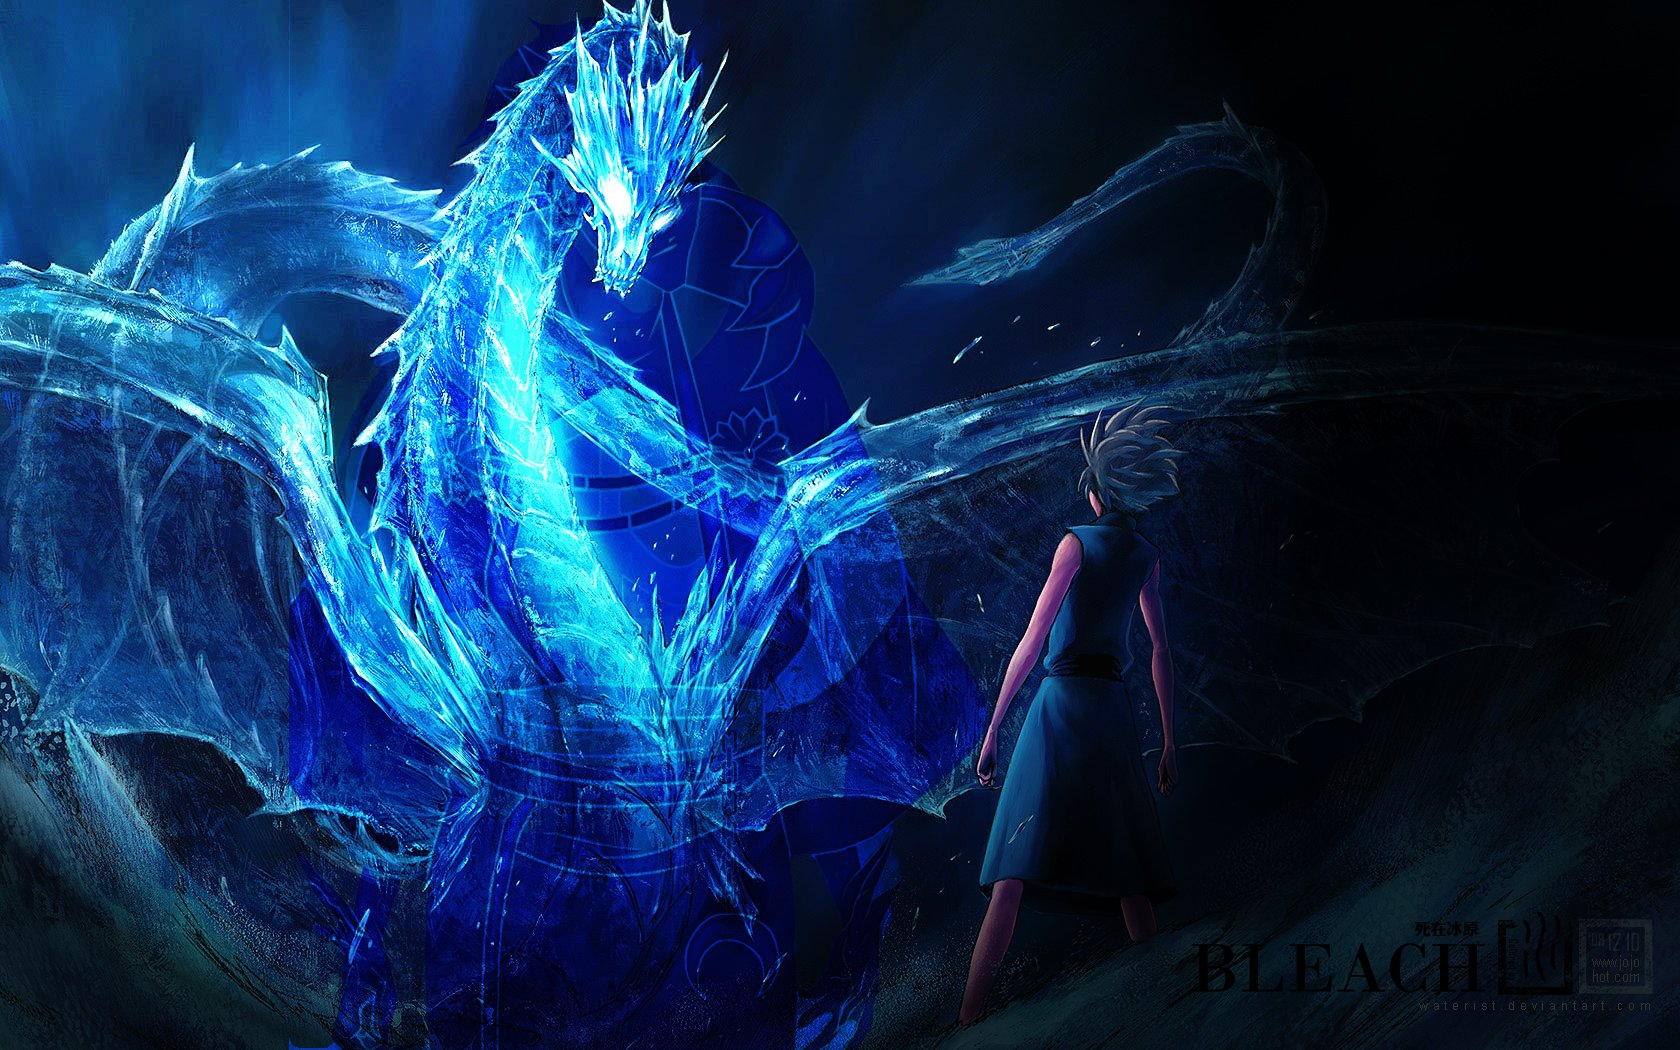 Elemental Lightning Dragon furthermore Forgotten Sky World furthermore Bluedragon in addition Fantasy Sword together with Blue Fire 126403661. on electric elemental dragons